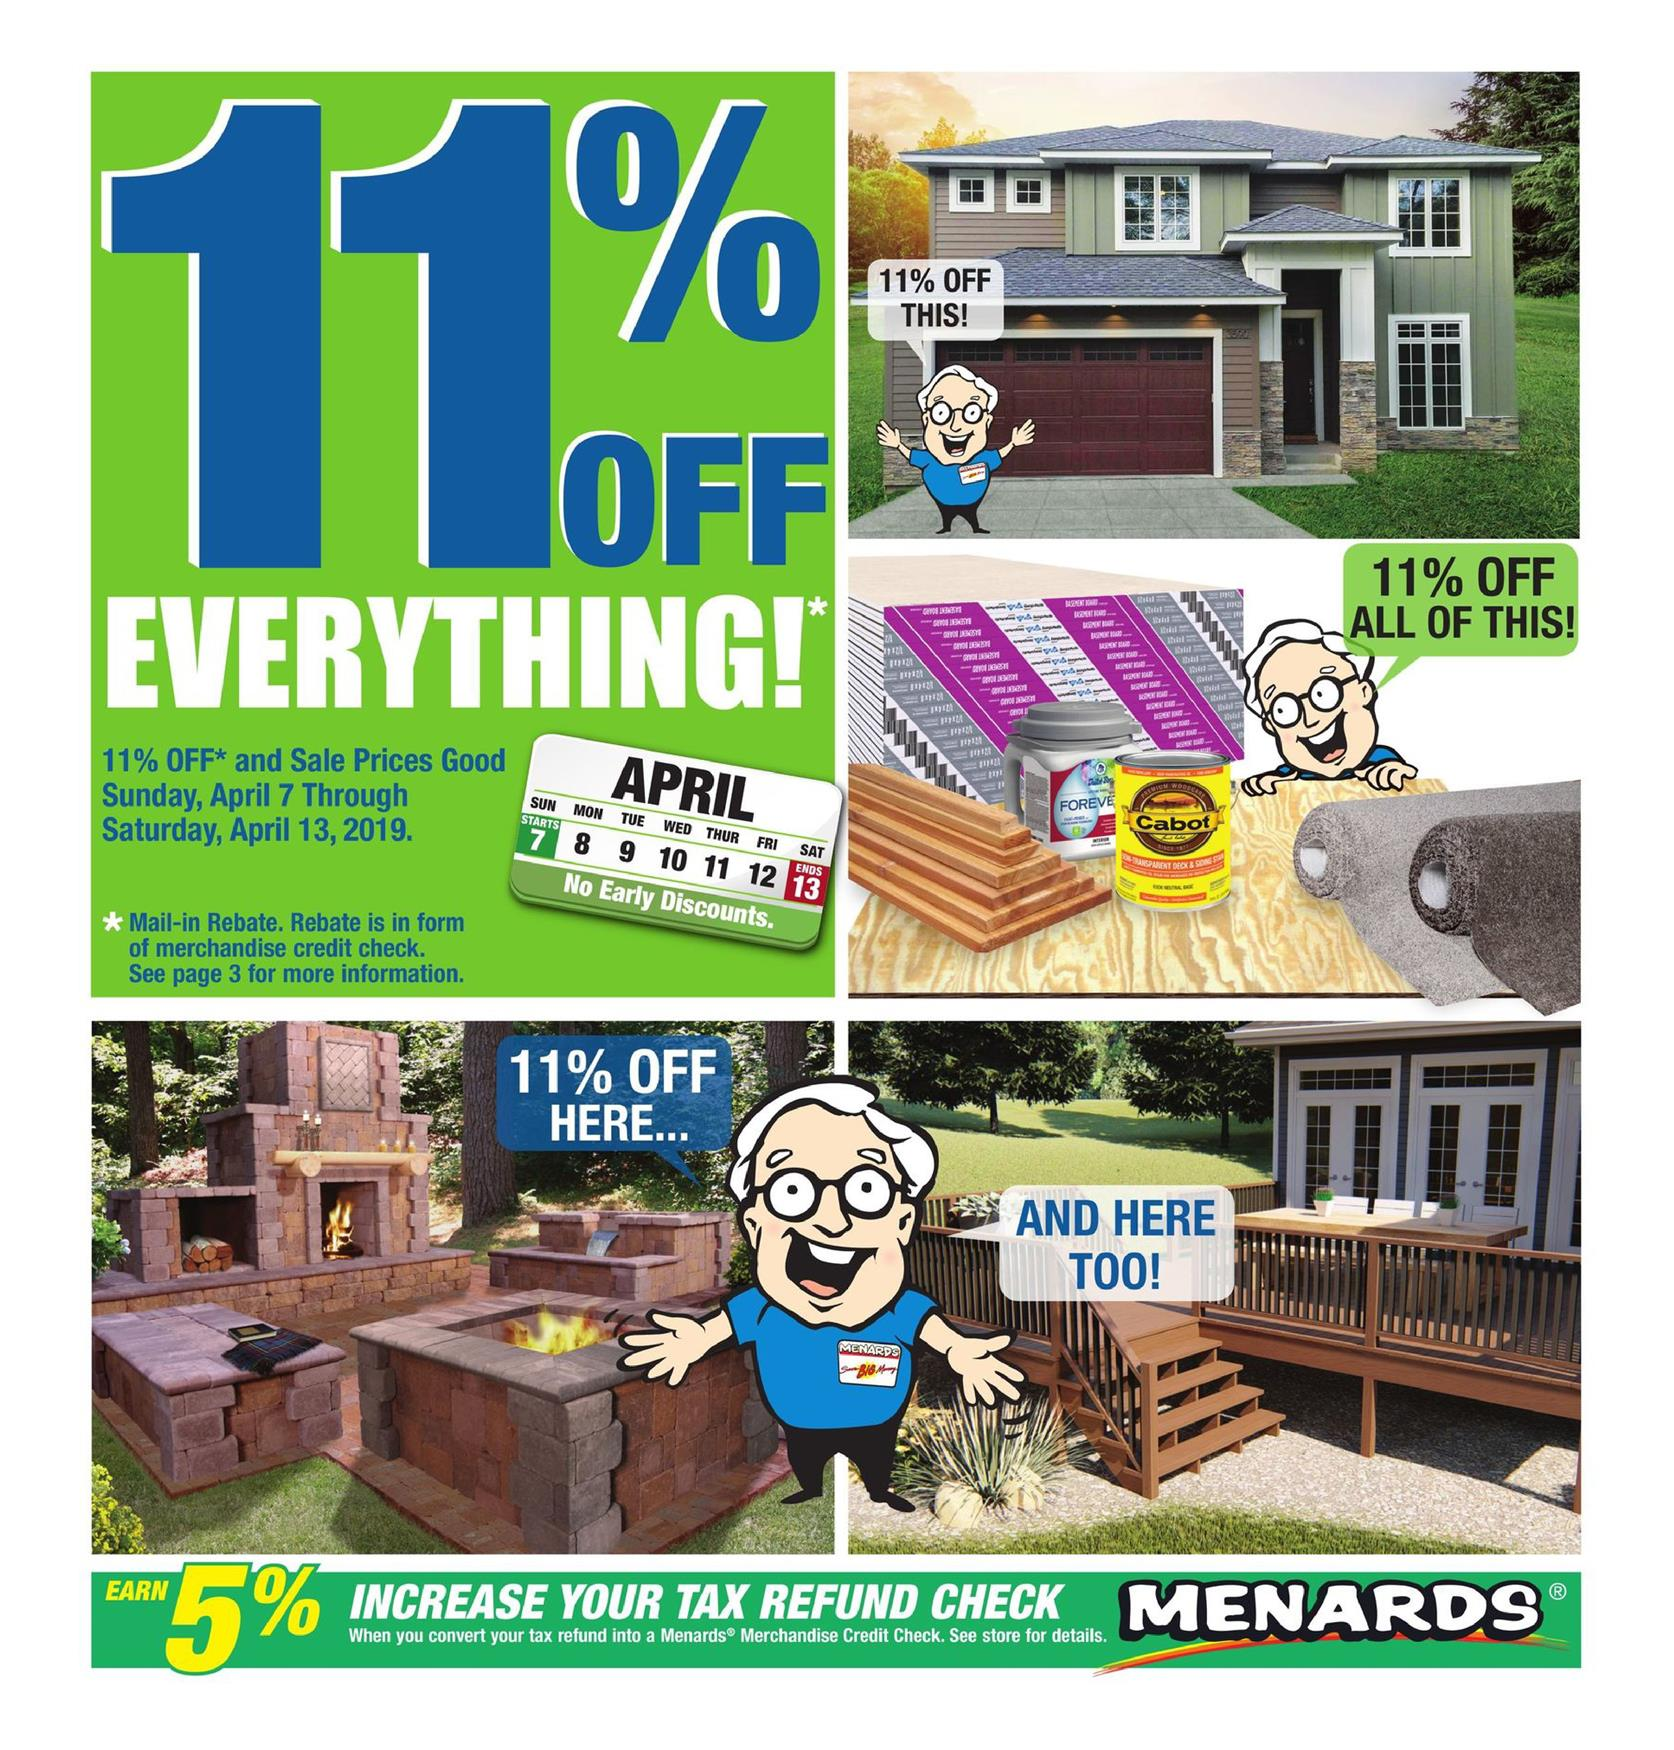 Anna besso nova : Menards 11 rebate may 2019